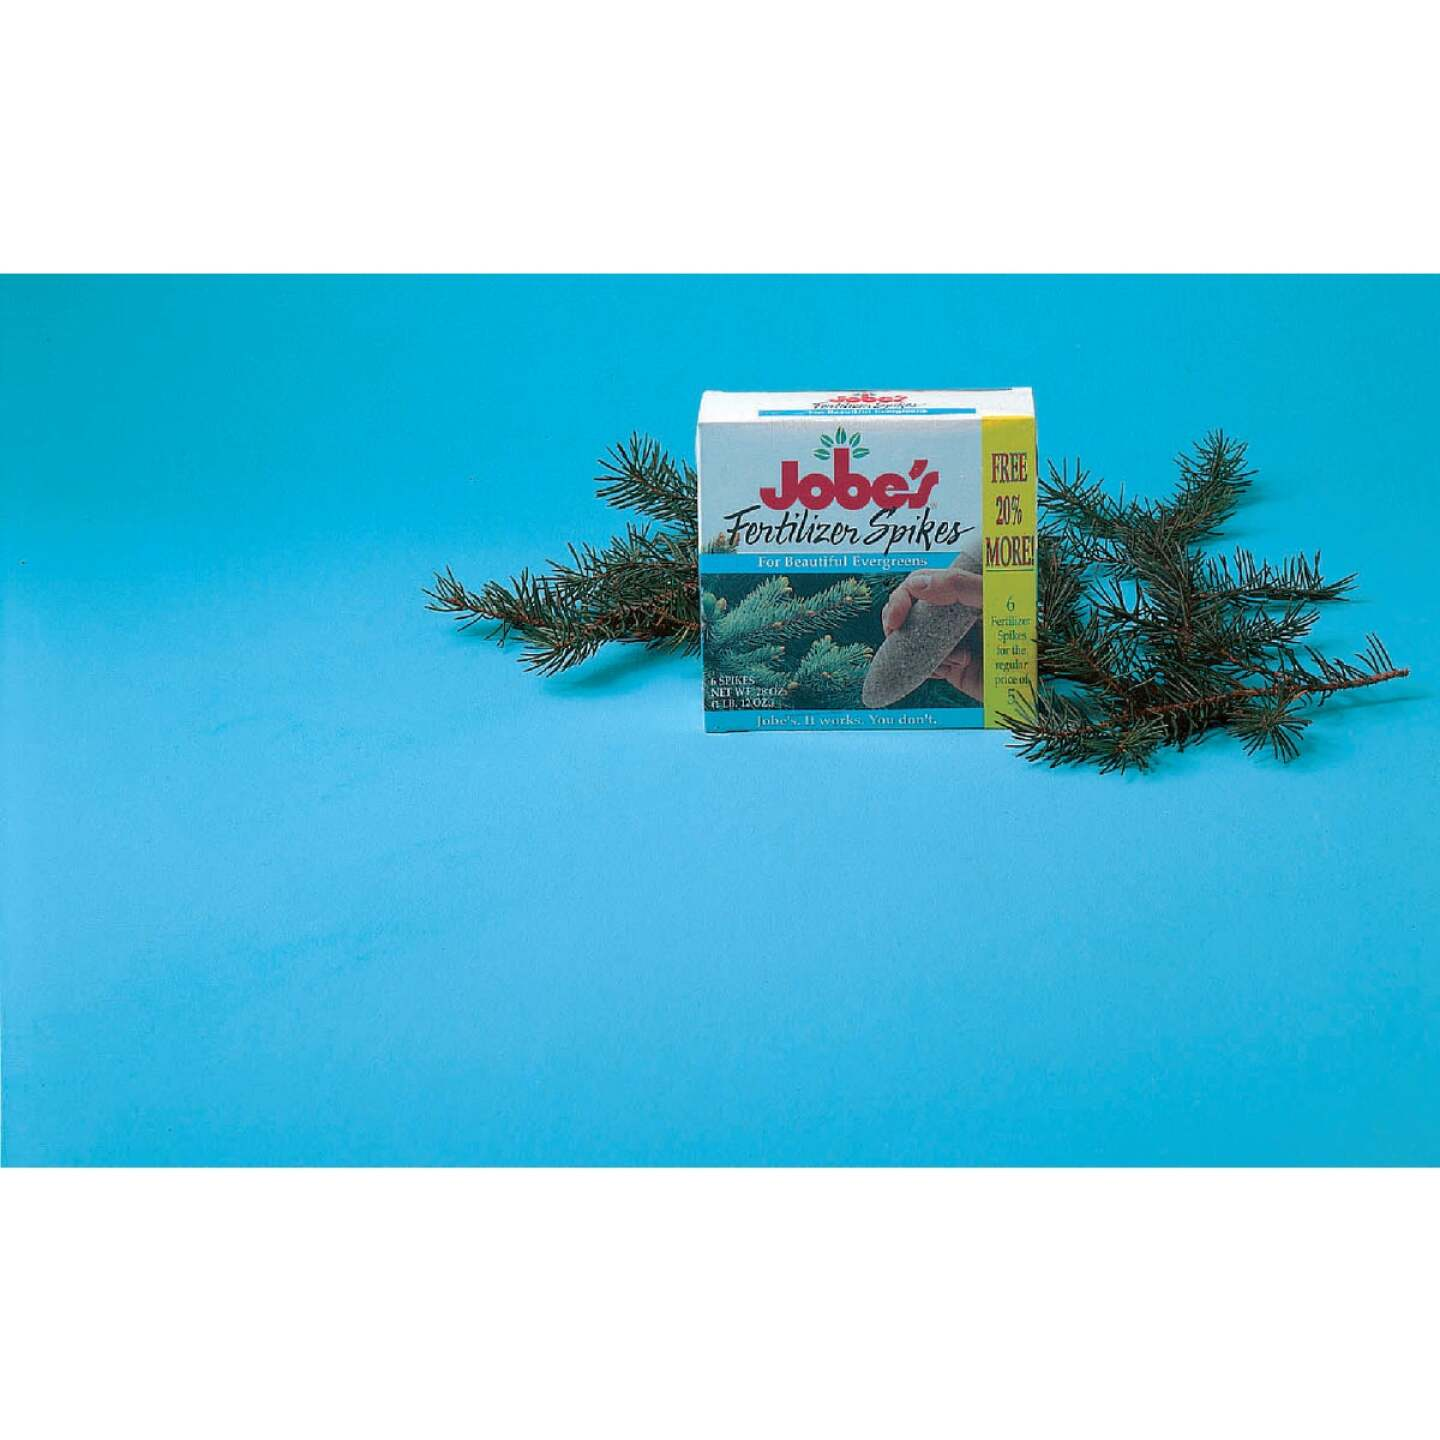 Jobe's Evergreen 13-3-4 Tree & Shrub Fertilizer Spikes (5-Pack) Image 2